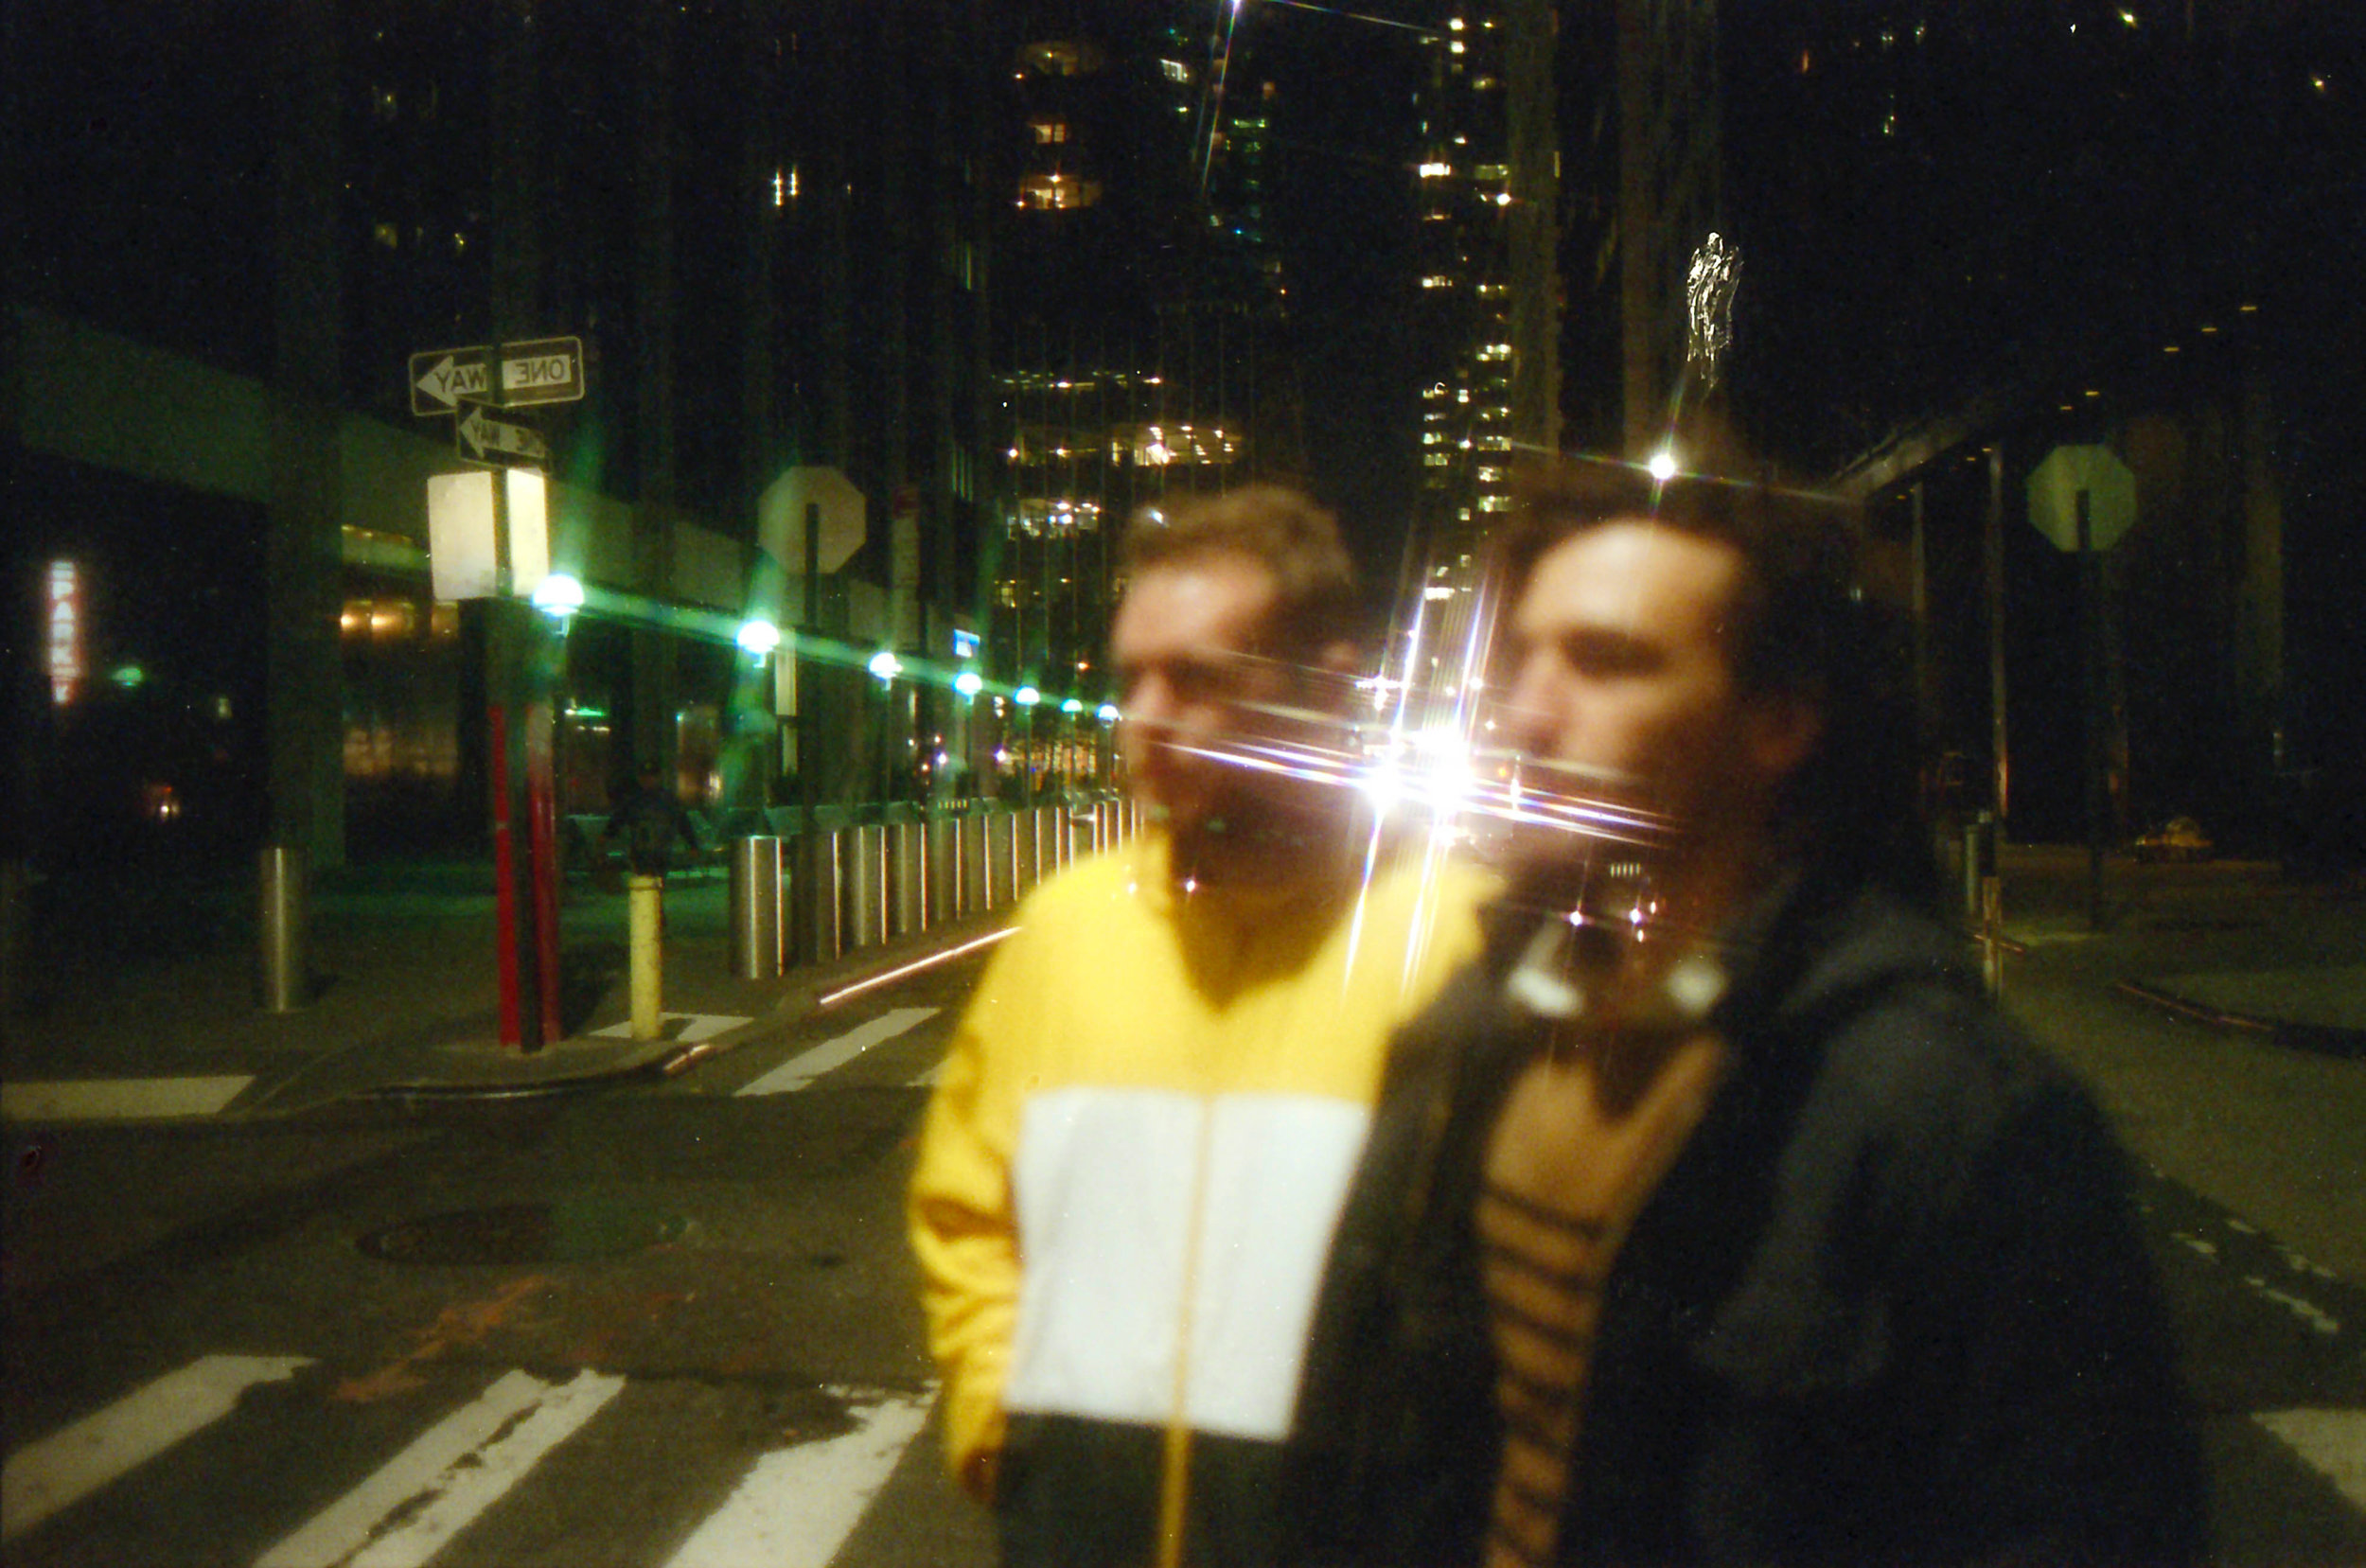 """REFS Define Their Own Tale in New Single """"Stories"""" - PREMIERE - You heard it first on Majestic Journal: REFS' latest artistic chapter is one that will stay with you.fresh sounds"""